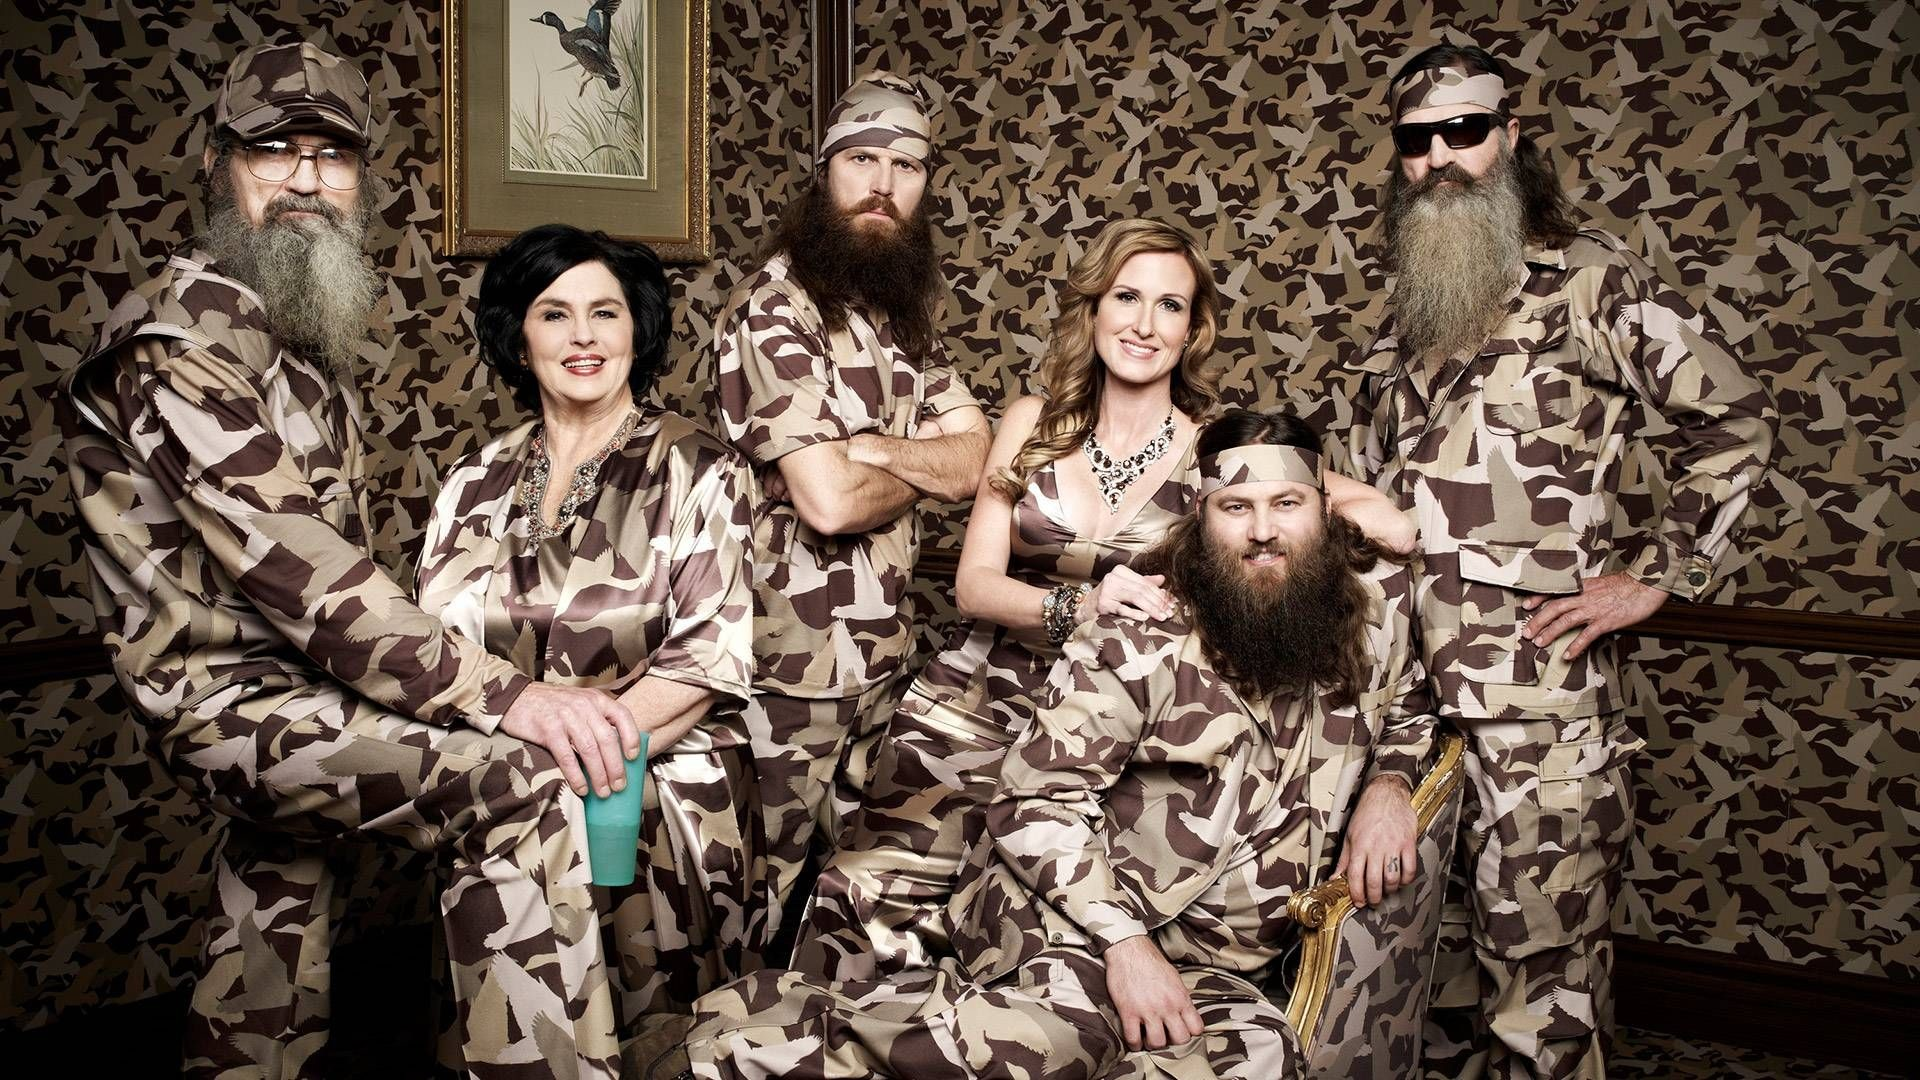 Res: 1920x1080, HD Duck Dynasty Wallpapers and Photos HD Movies Wallpapers